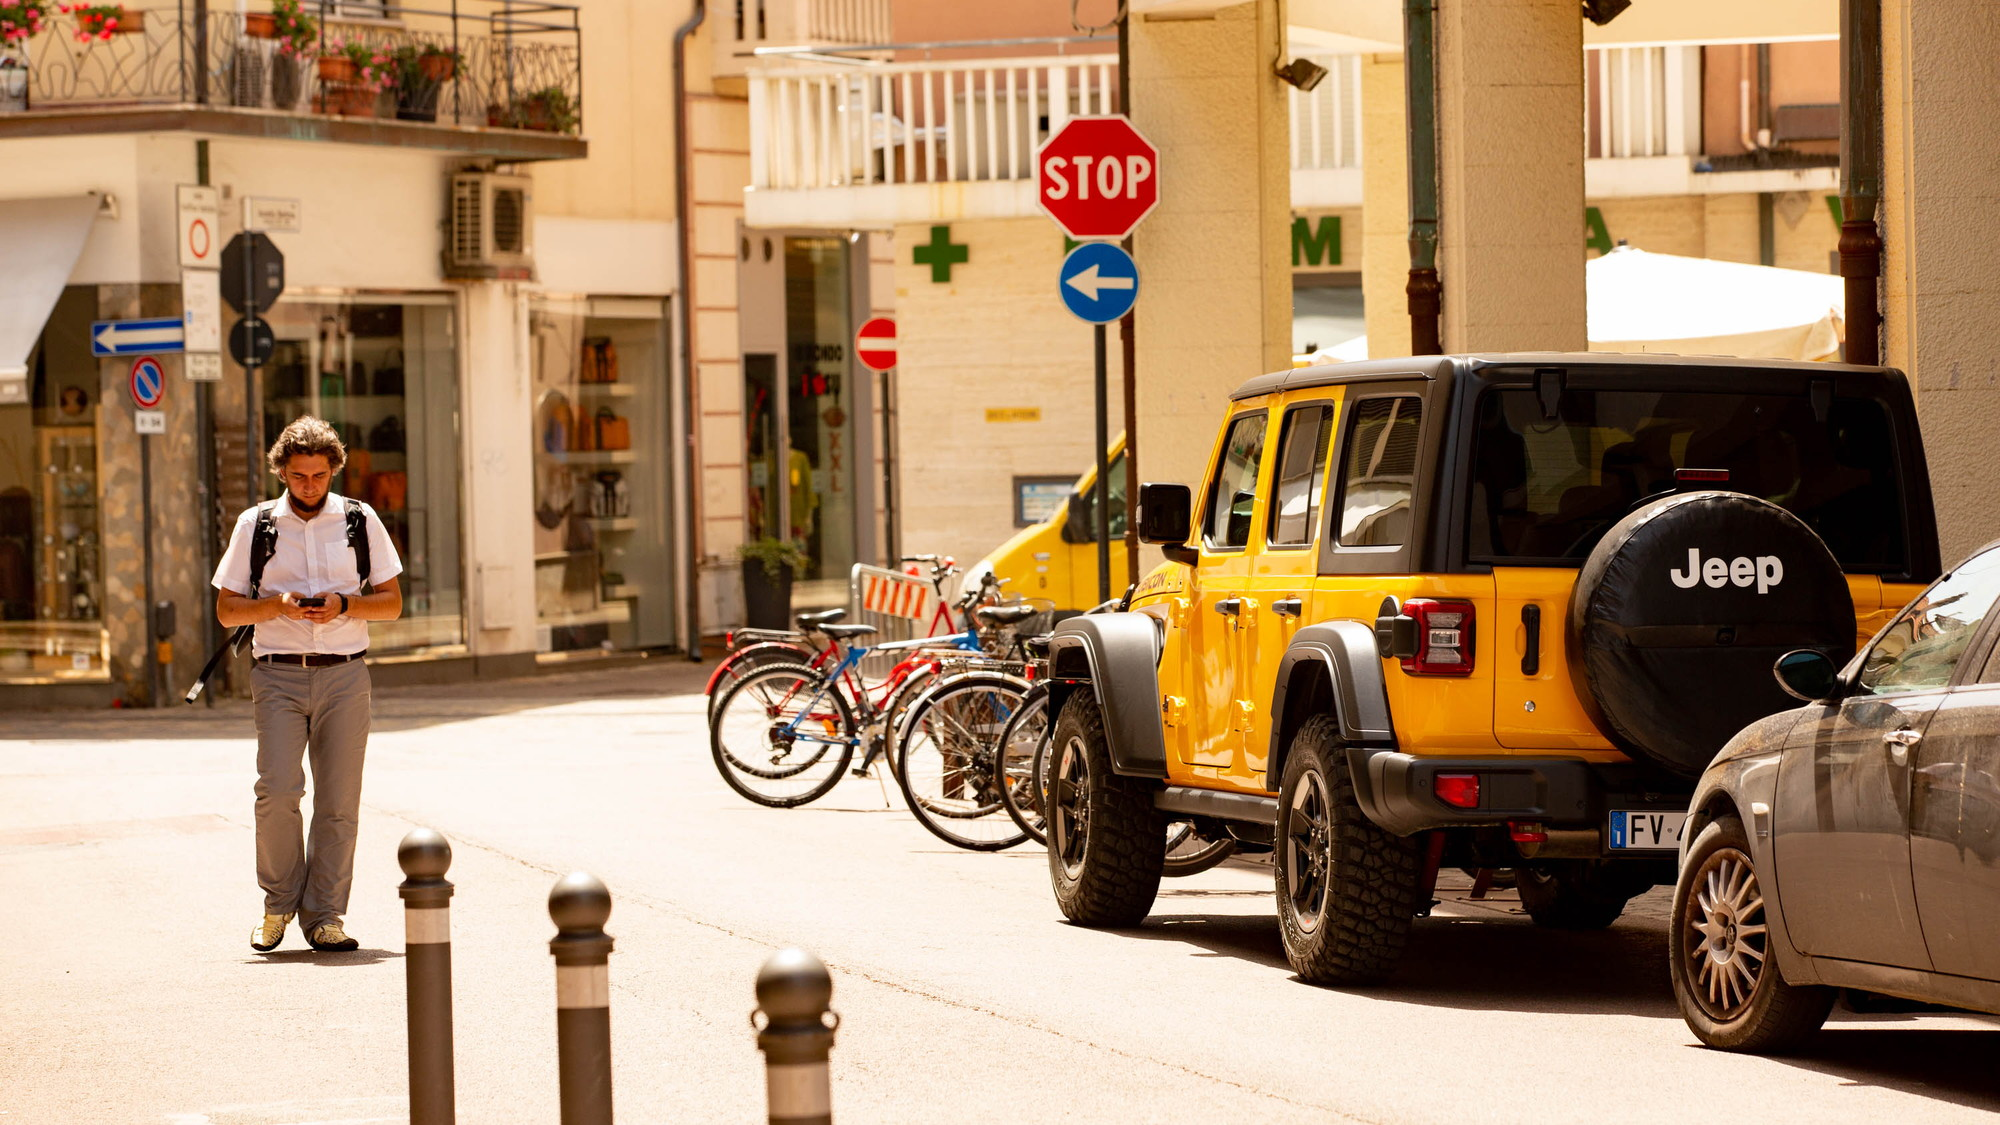 2019 Jeep Wrangler Rubicon in Rimini (Crossing the Rubicone)